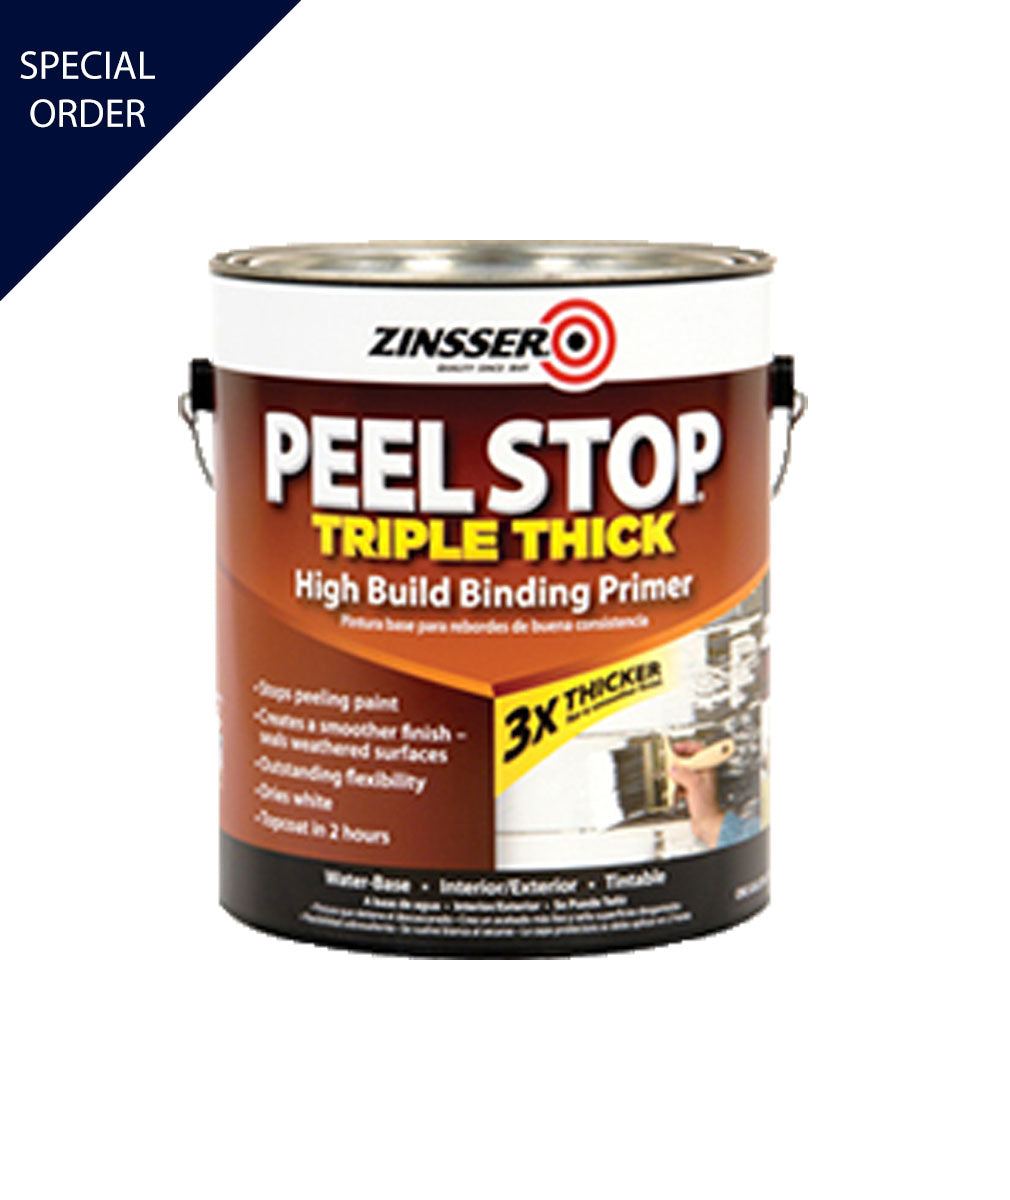 Gallon of Peel Stop Triple Thick Binding Primer, available at Mallory Paint Store in WA & ID.